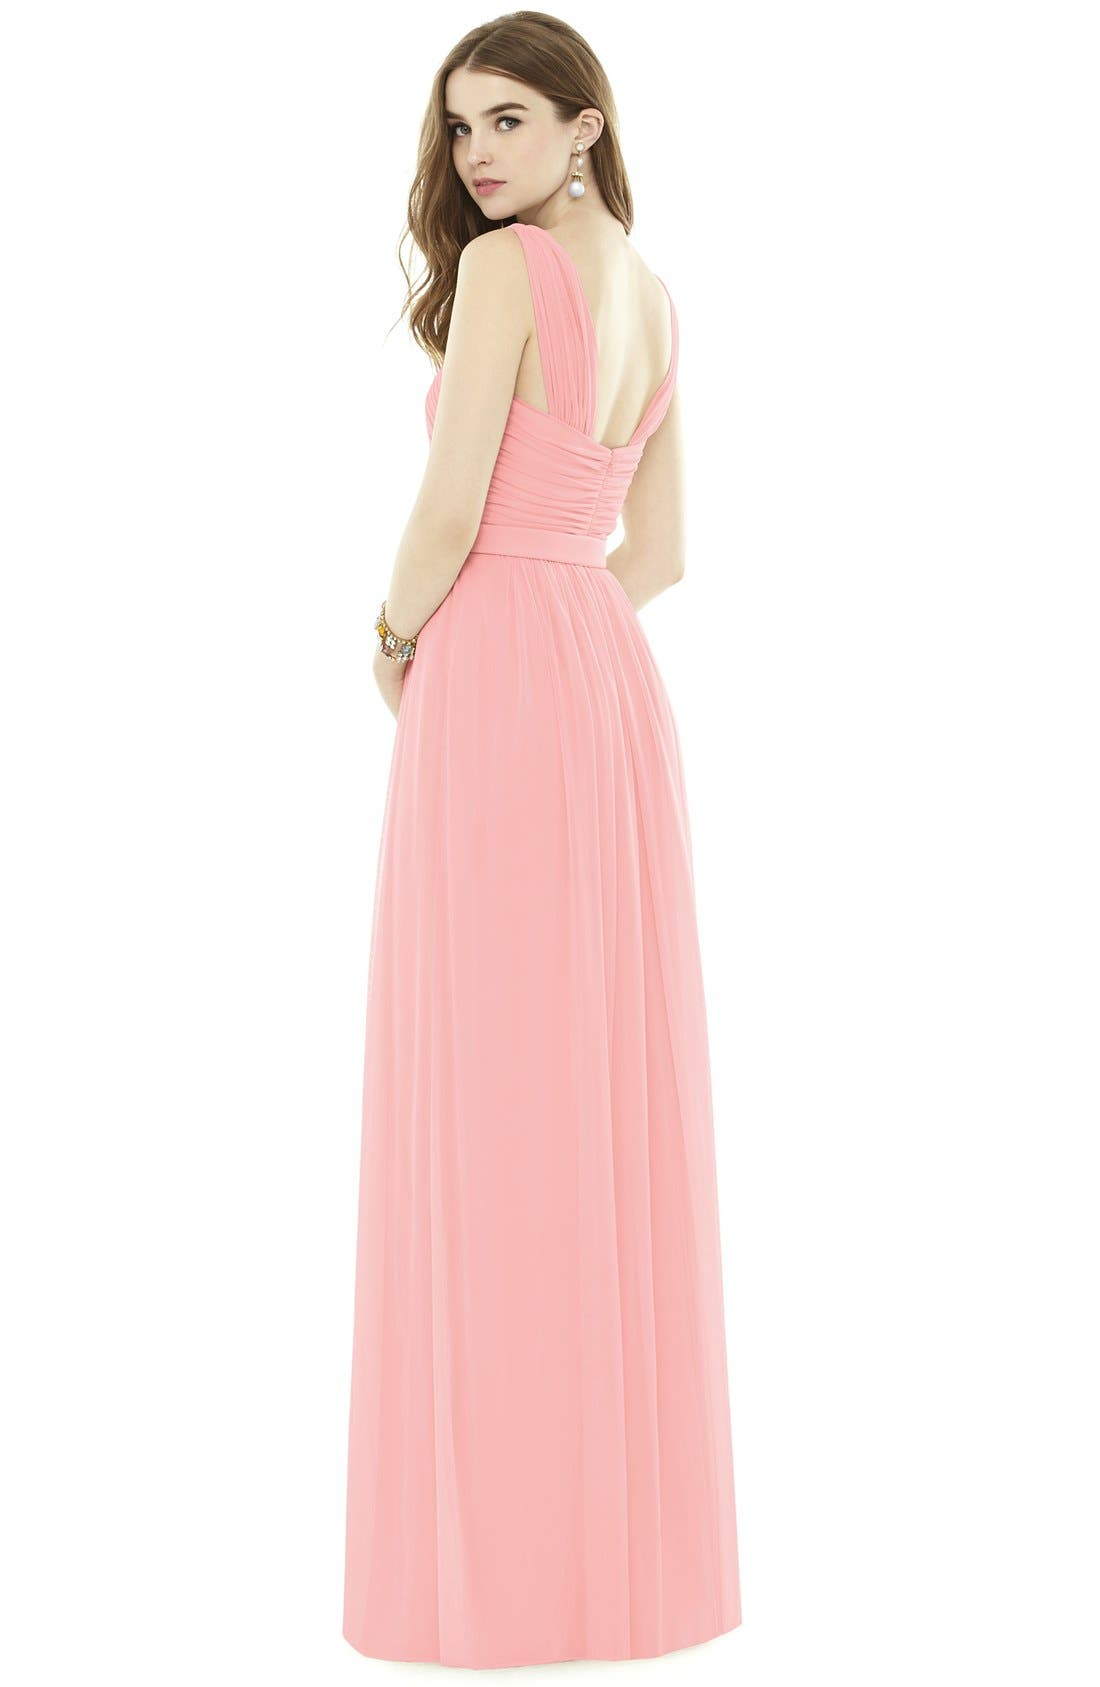 Pleat Chiffon Knit A-Line Gown with Belt,                             Alternate thumbnail 2, color,                             633